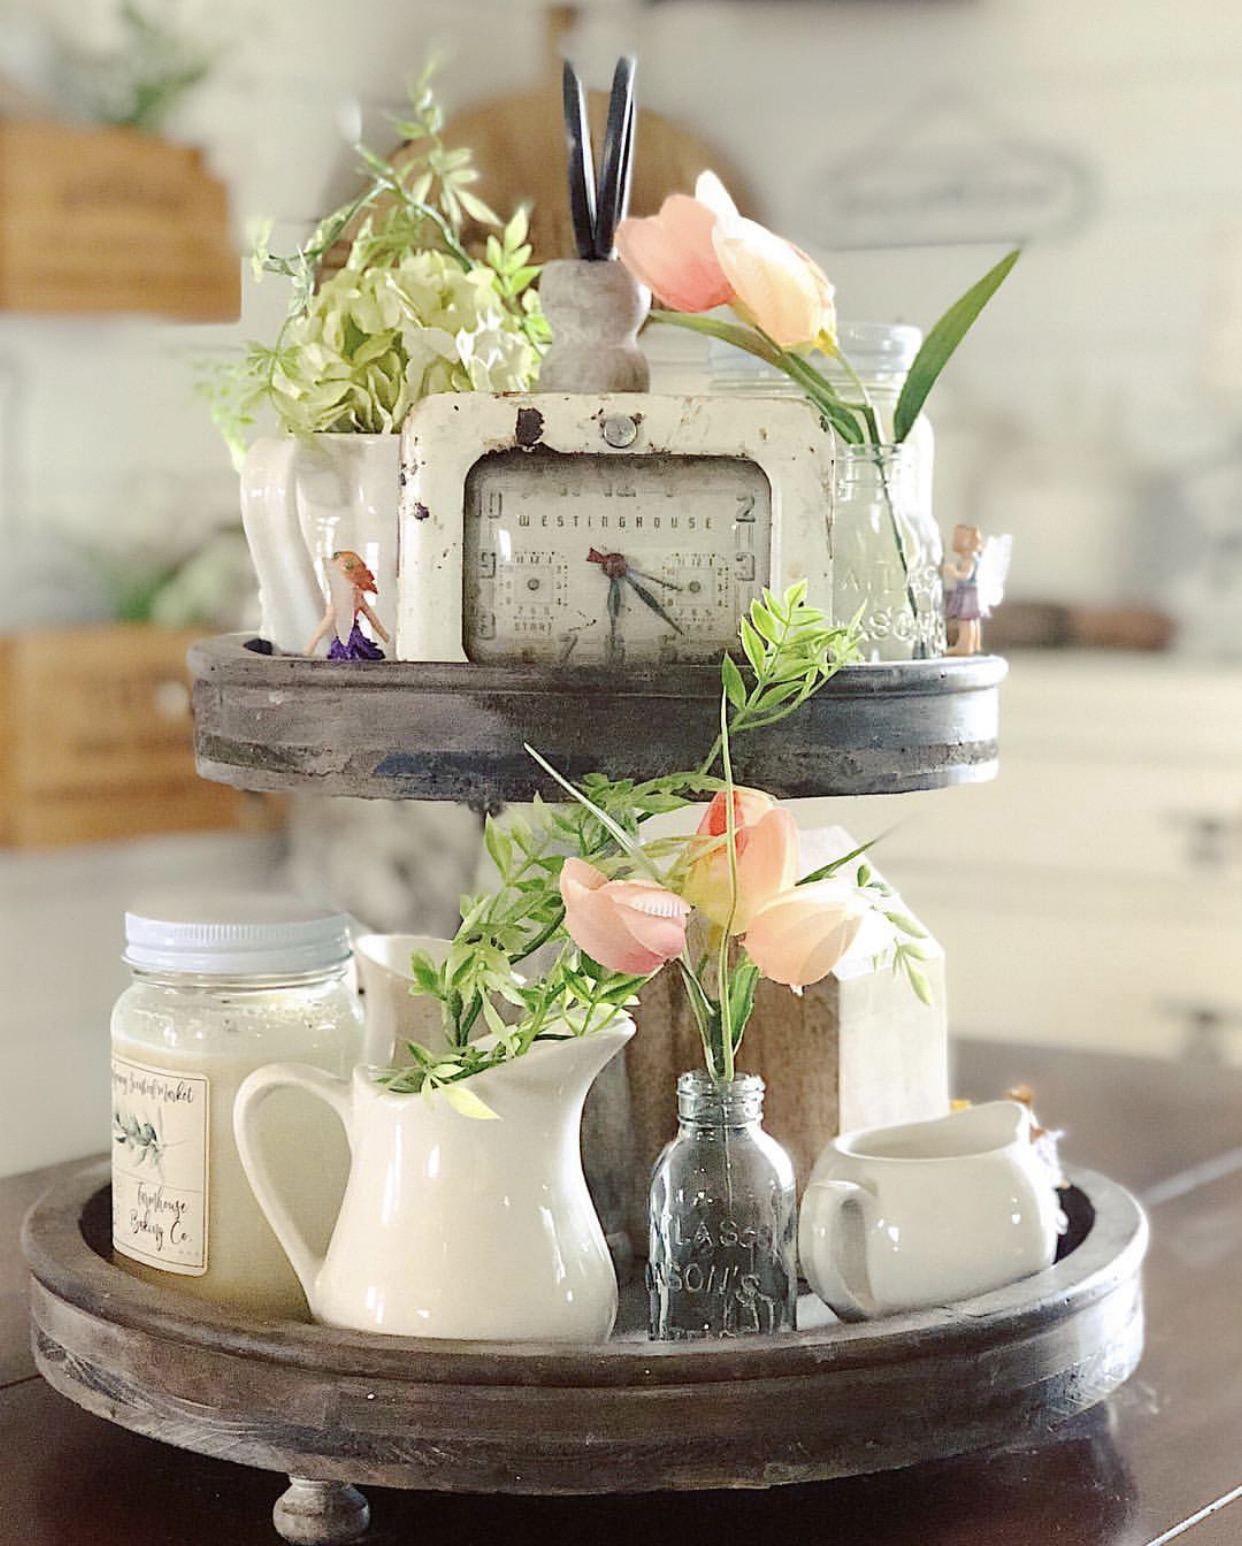 Modern Farmhouse Spring Home Decor Ideas: Inspiring Tiered Tray Style Ideas For Spring And Easter